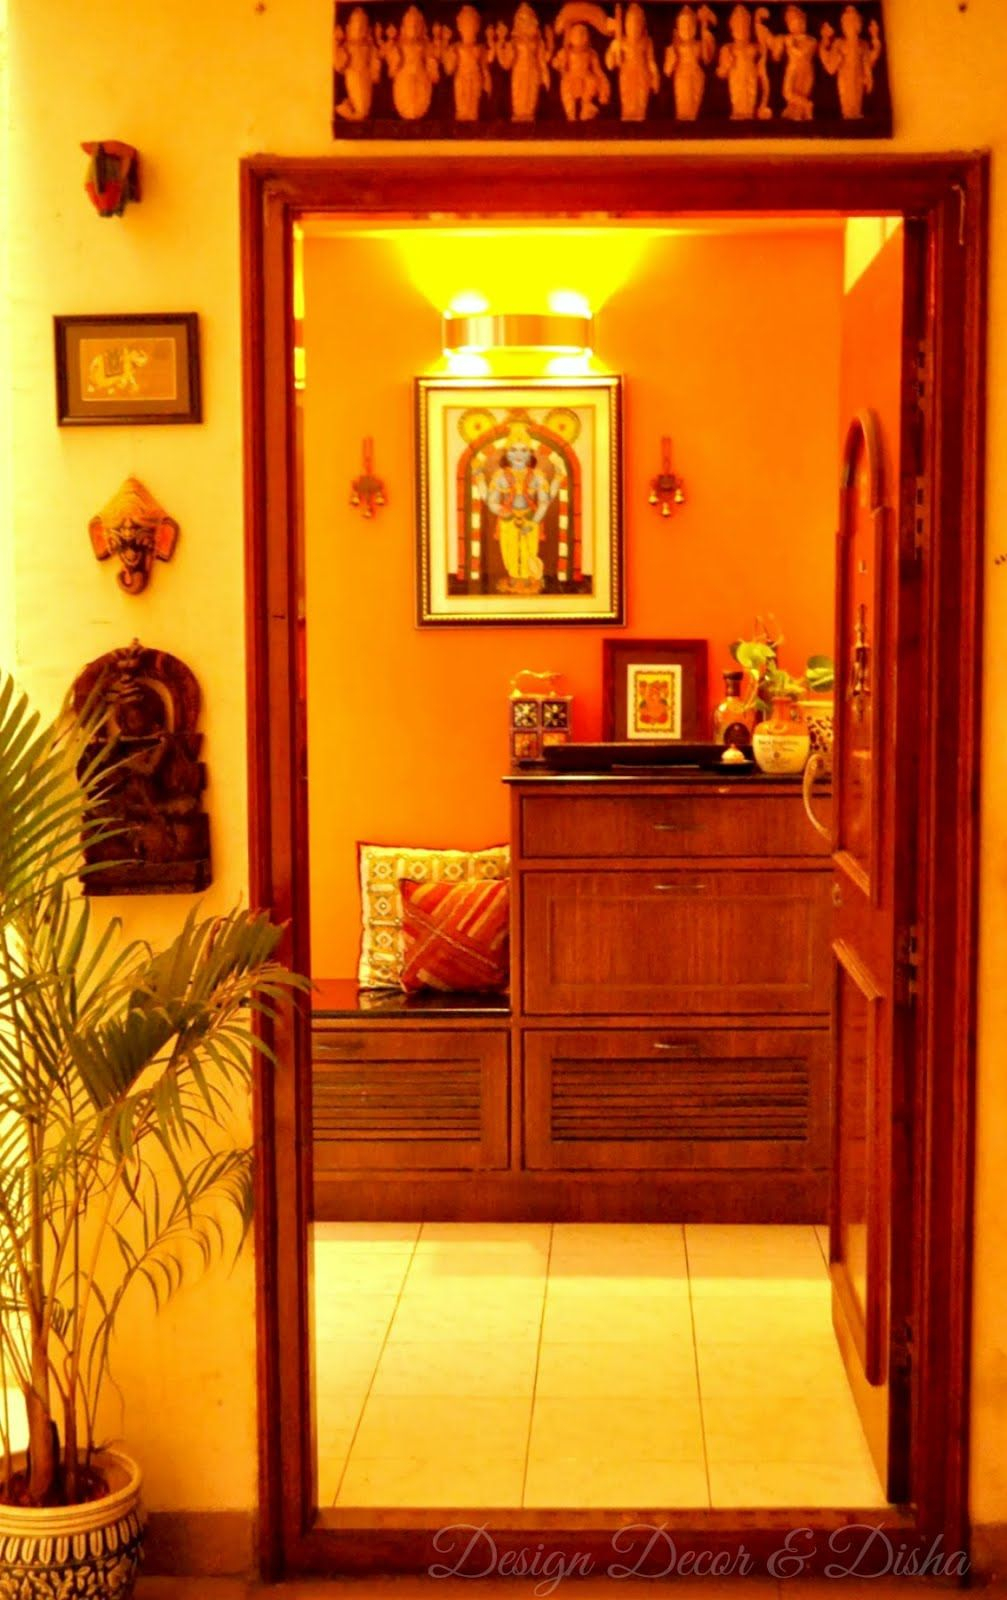 Epic Indian Home Entrance Decor | Furniture | Pinterest | Entrance Decor inside Unique Indian Home Entrance Decoration